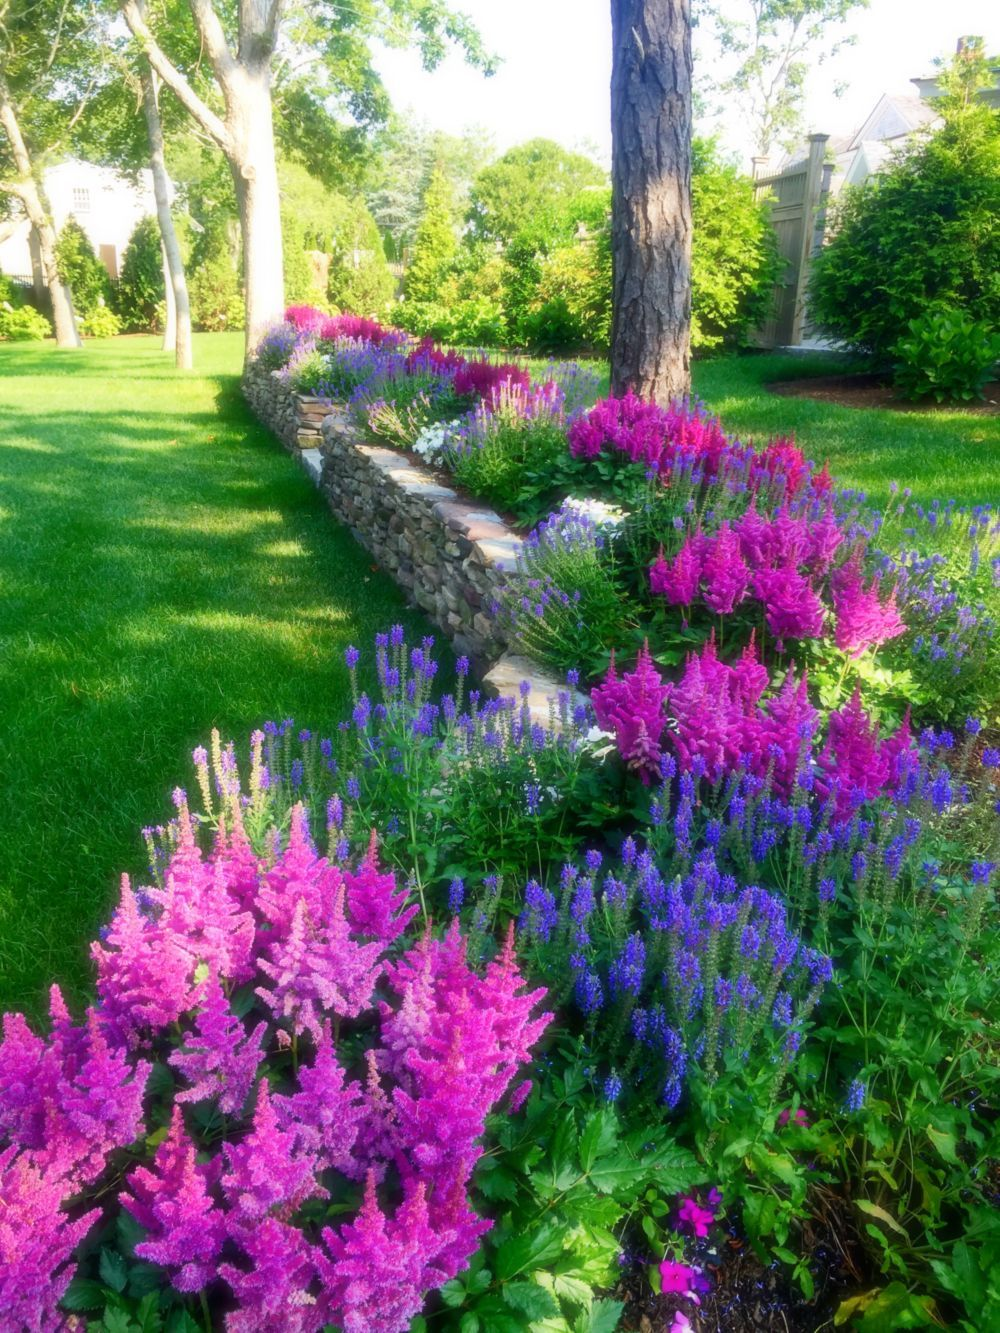 37 simple fresh and beautiful flower garden design ideas gardens 37 simple fresh and beautiful flower garden design ideas wartaku izmirmasajfo